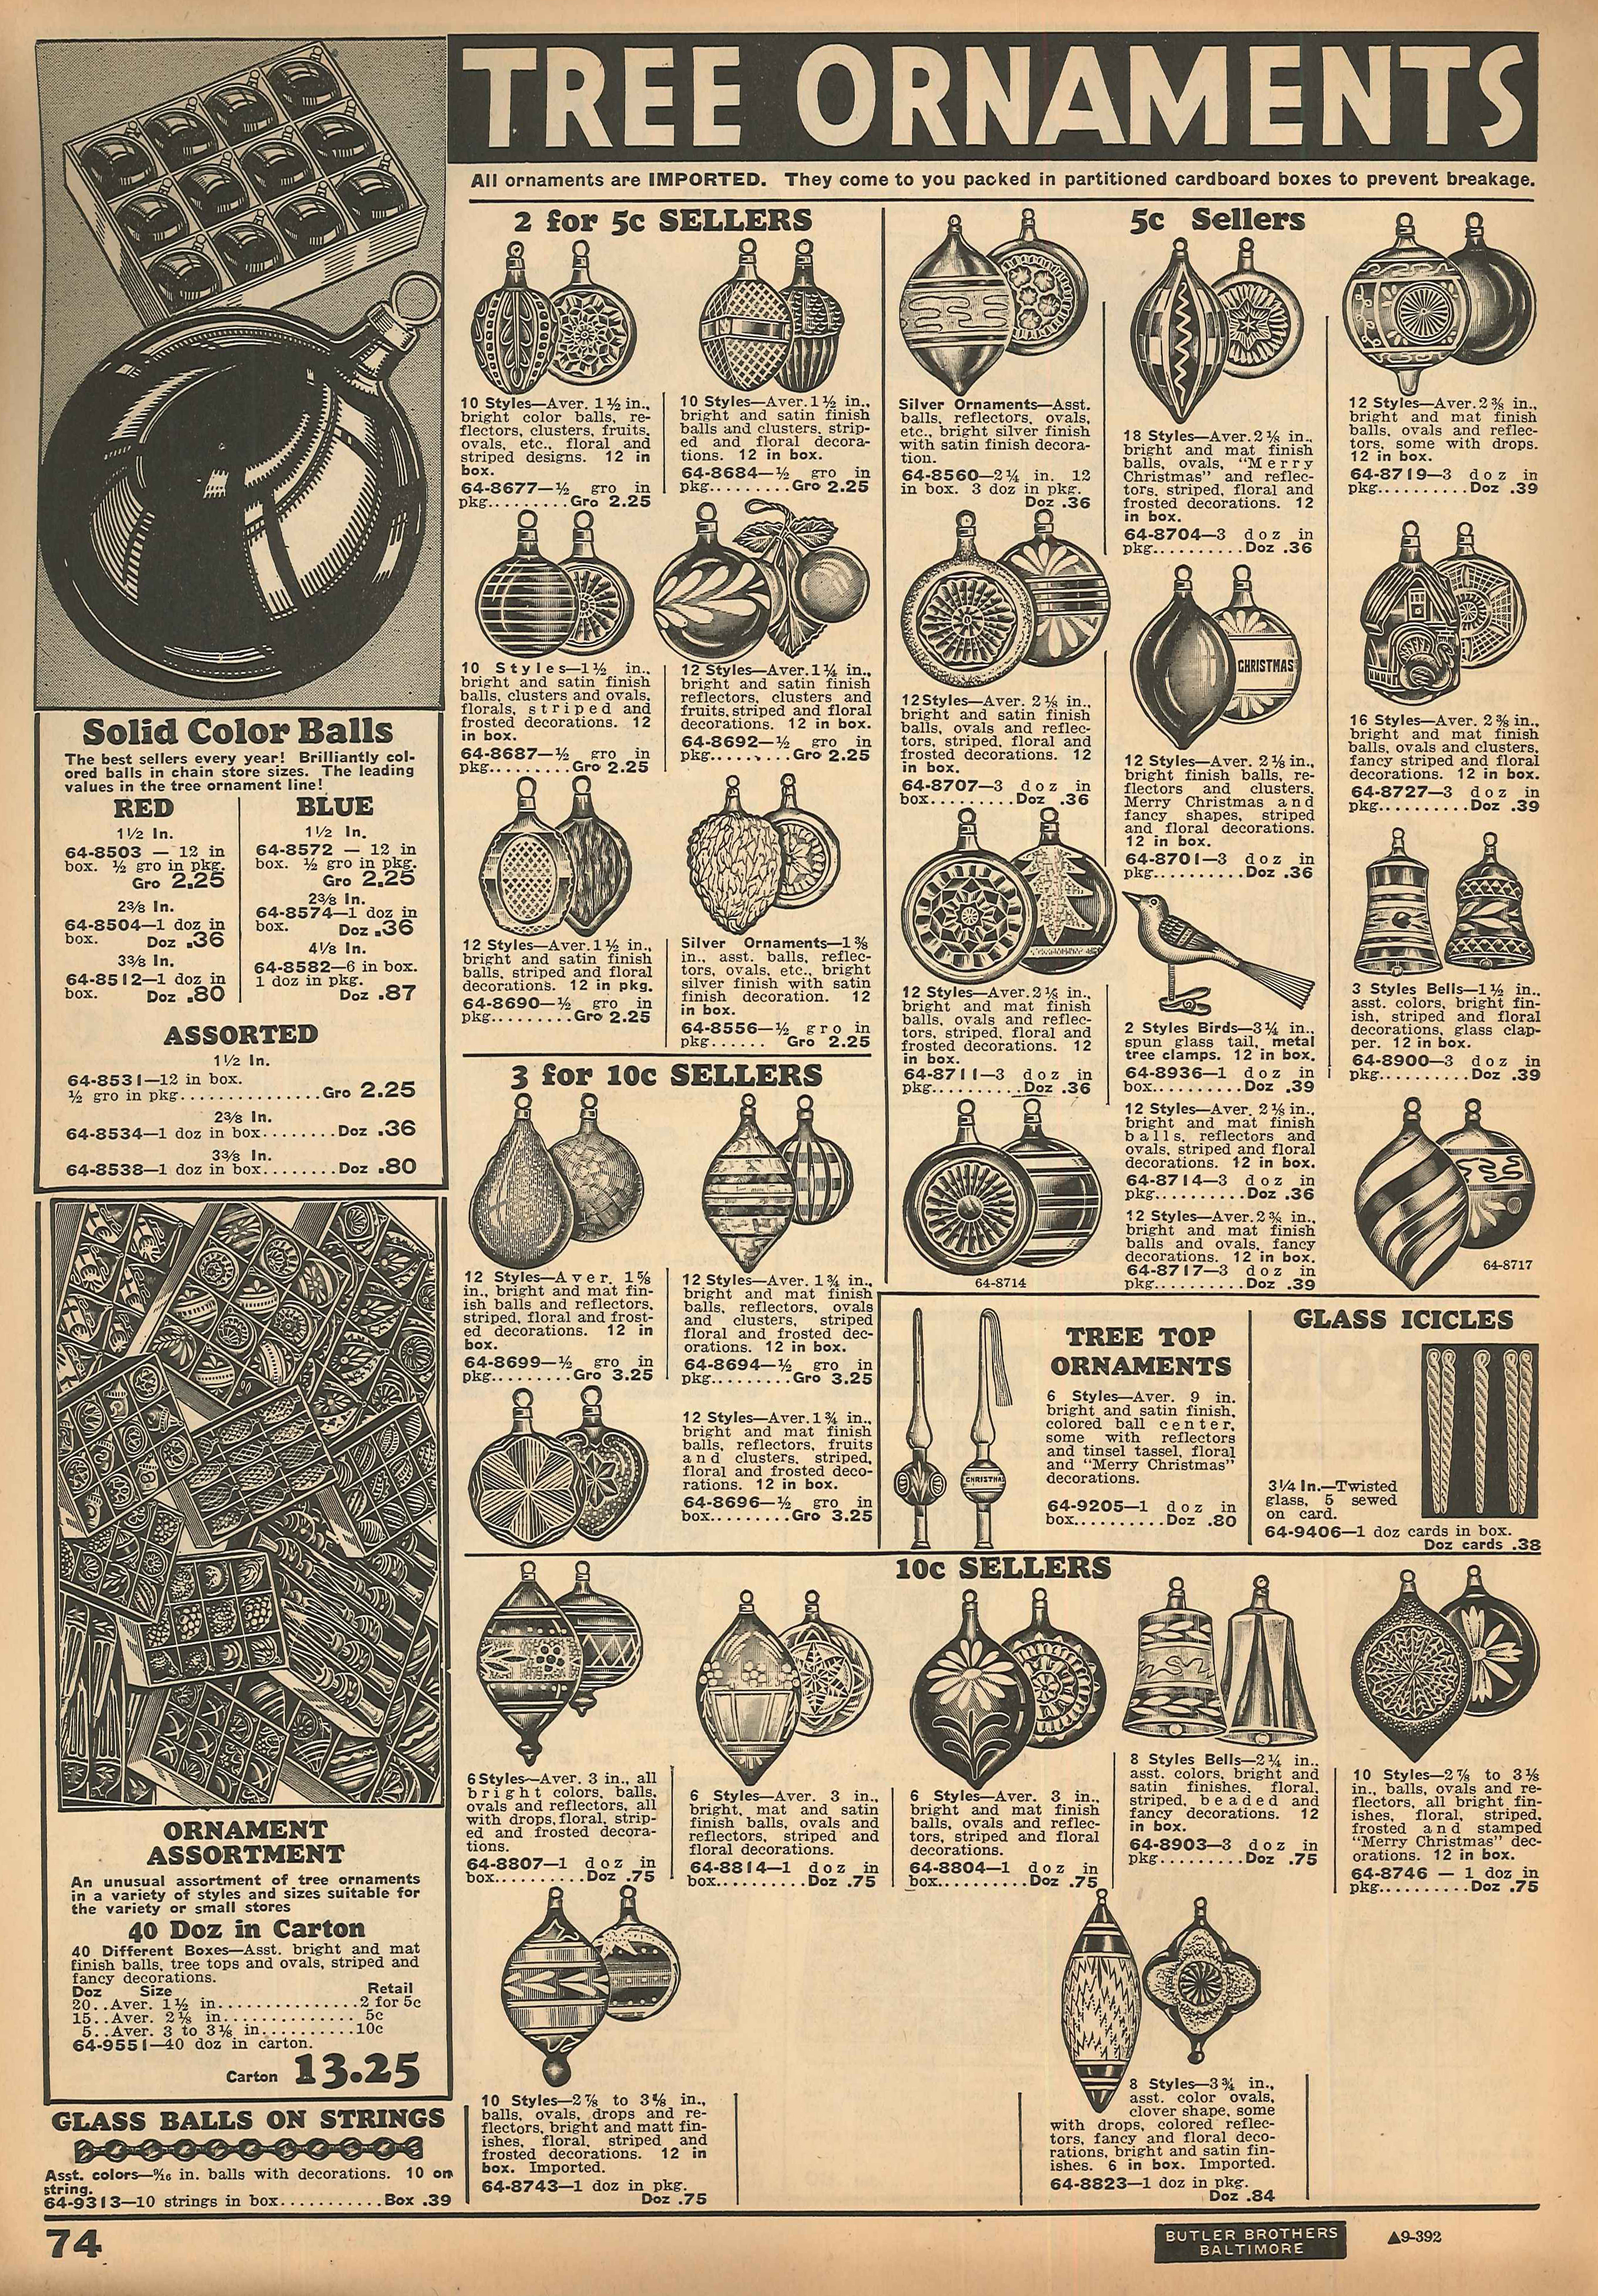 Christmas ornament catalogs - 1934 Butler Brothers Catalog Bib No 96000 Page 74 Note The Statement Under The Tree Ornaments Heading All Ornaments Are Imported